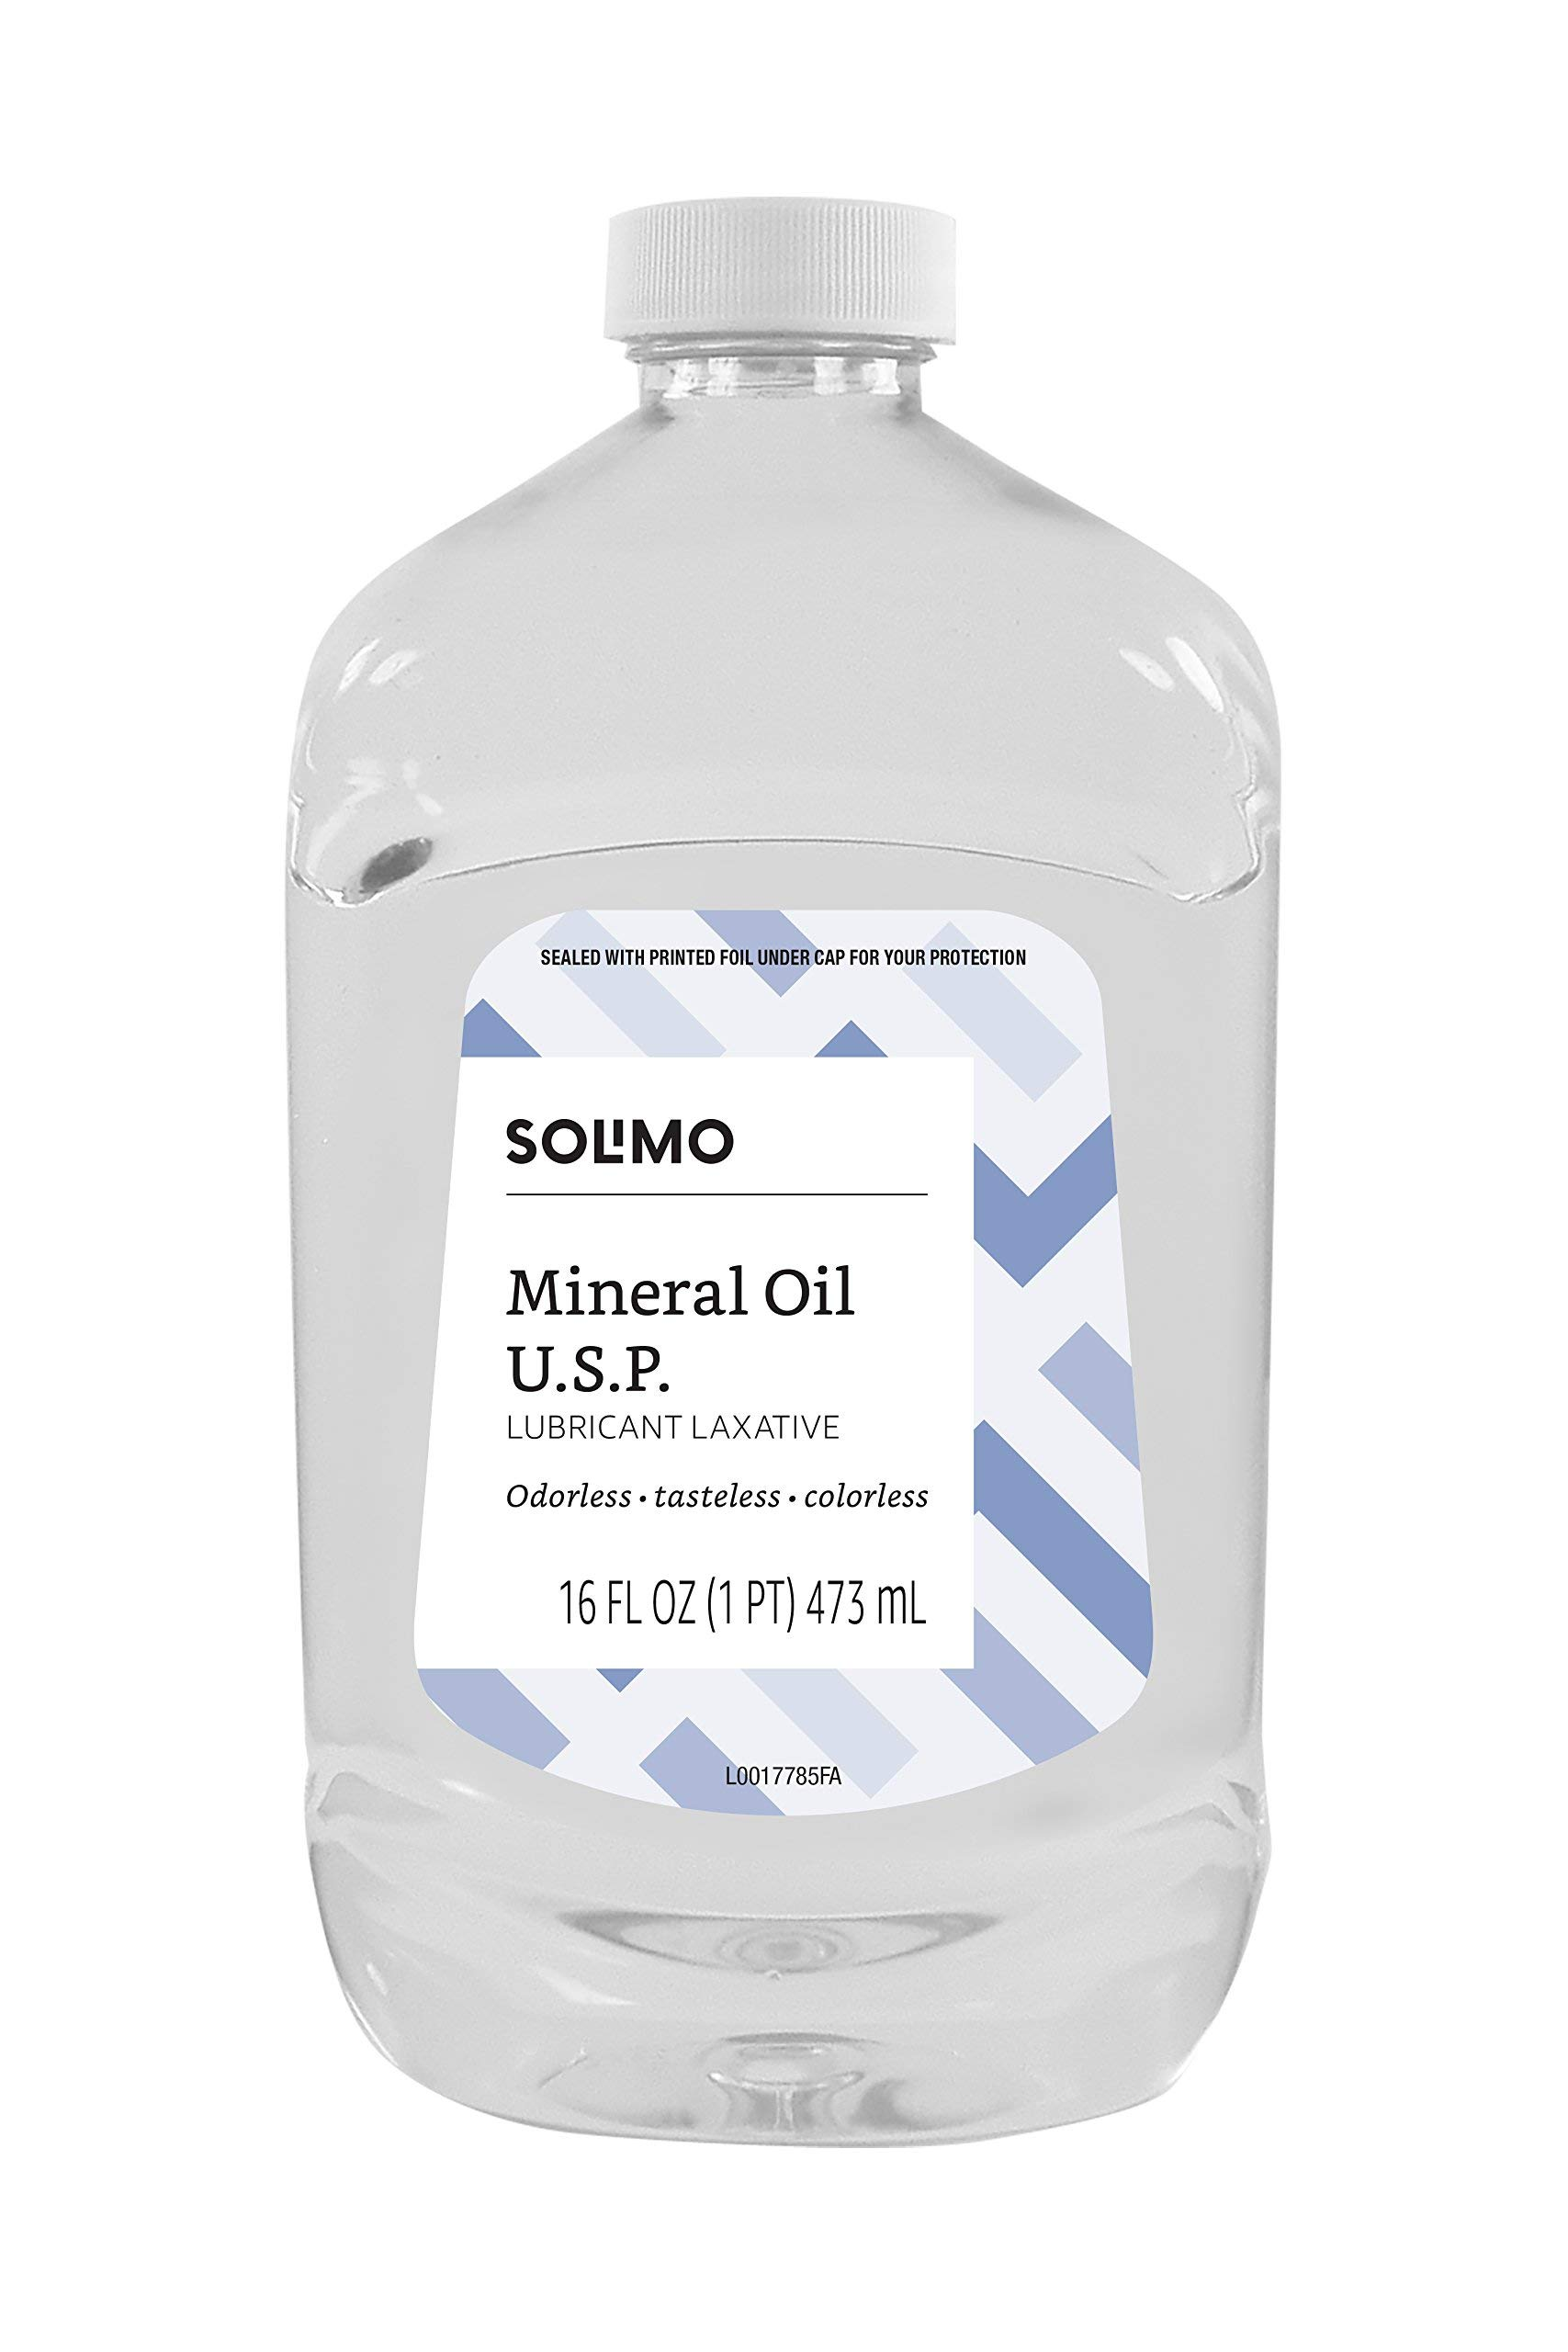 Amazon Brand - Solimo Lubricant Laxative Mineral Oil U.S.P, 16 Fluid Ounce